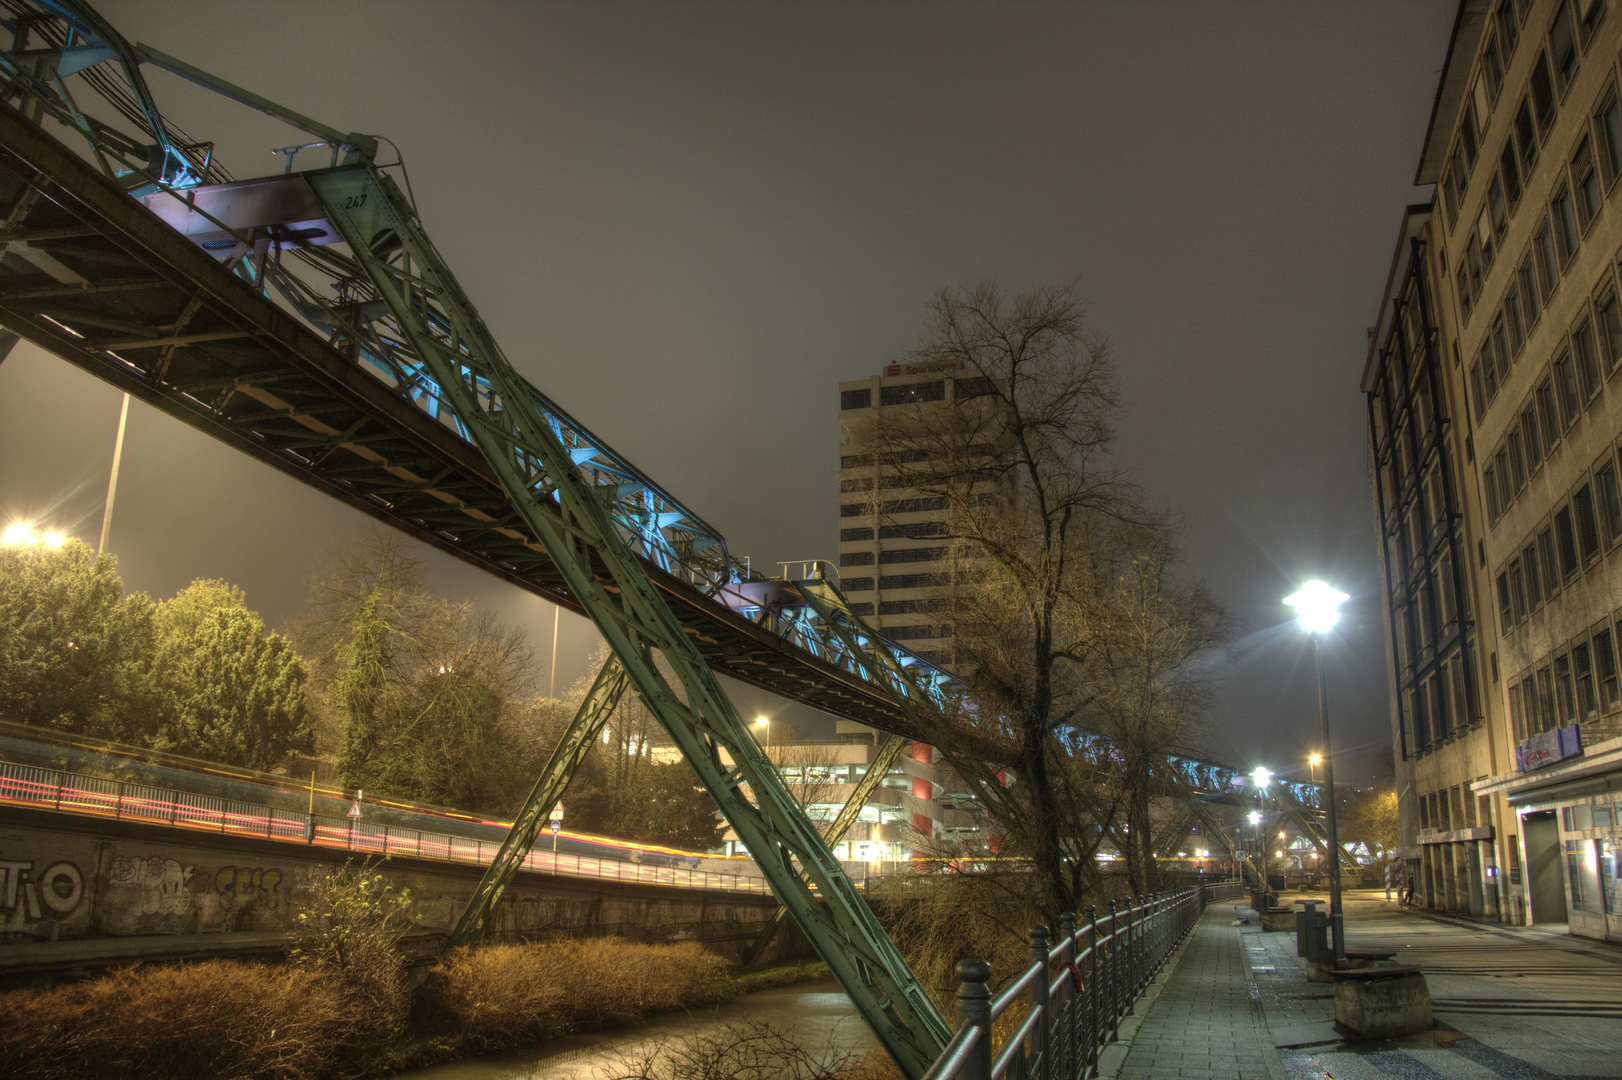 Abends in Wuppertal